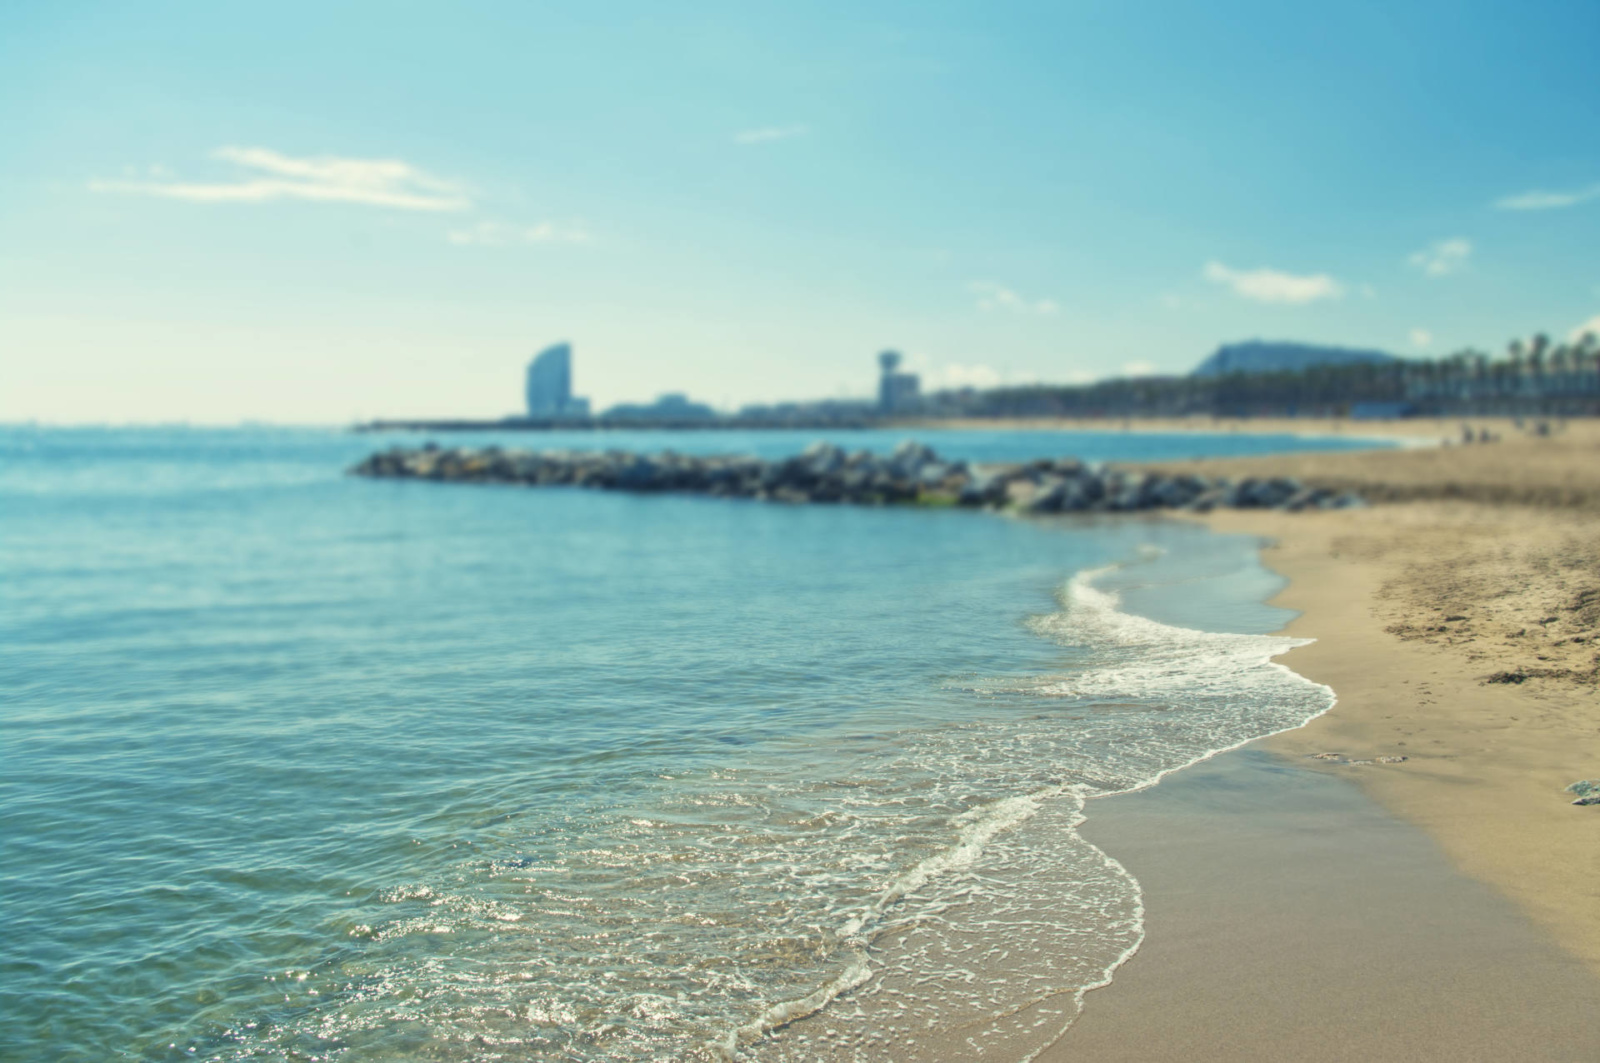 cross-processed background image of Barcelona beach on sunny spring day with shallow depth of field, Spain